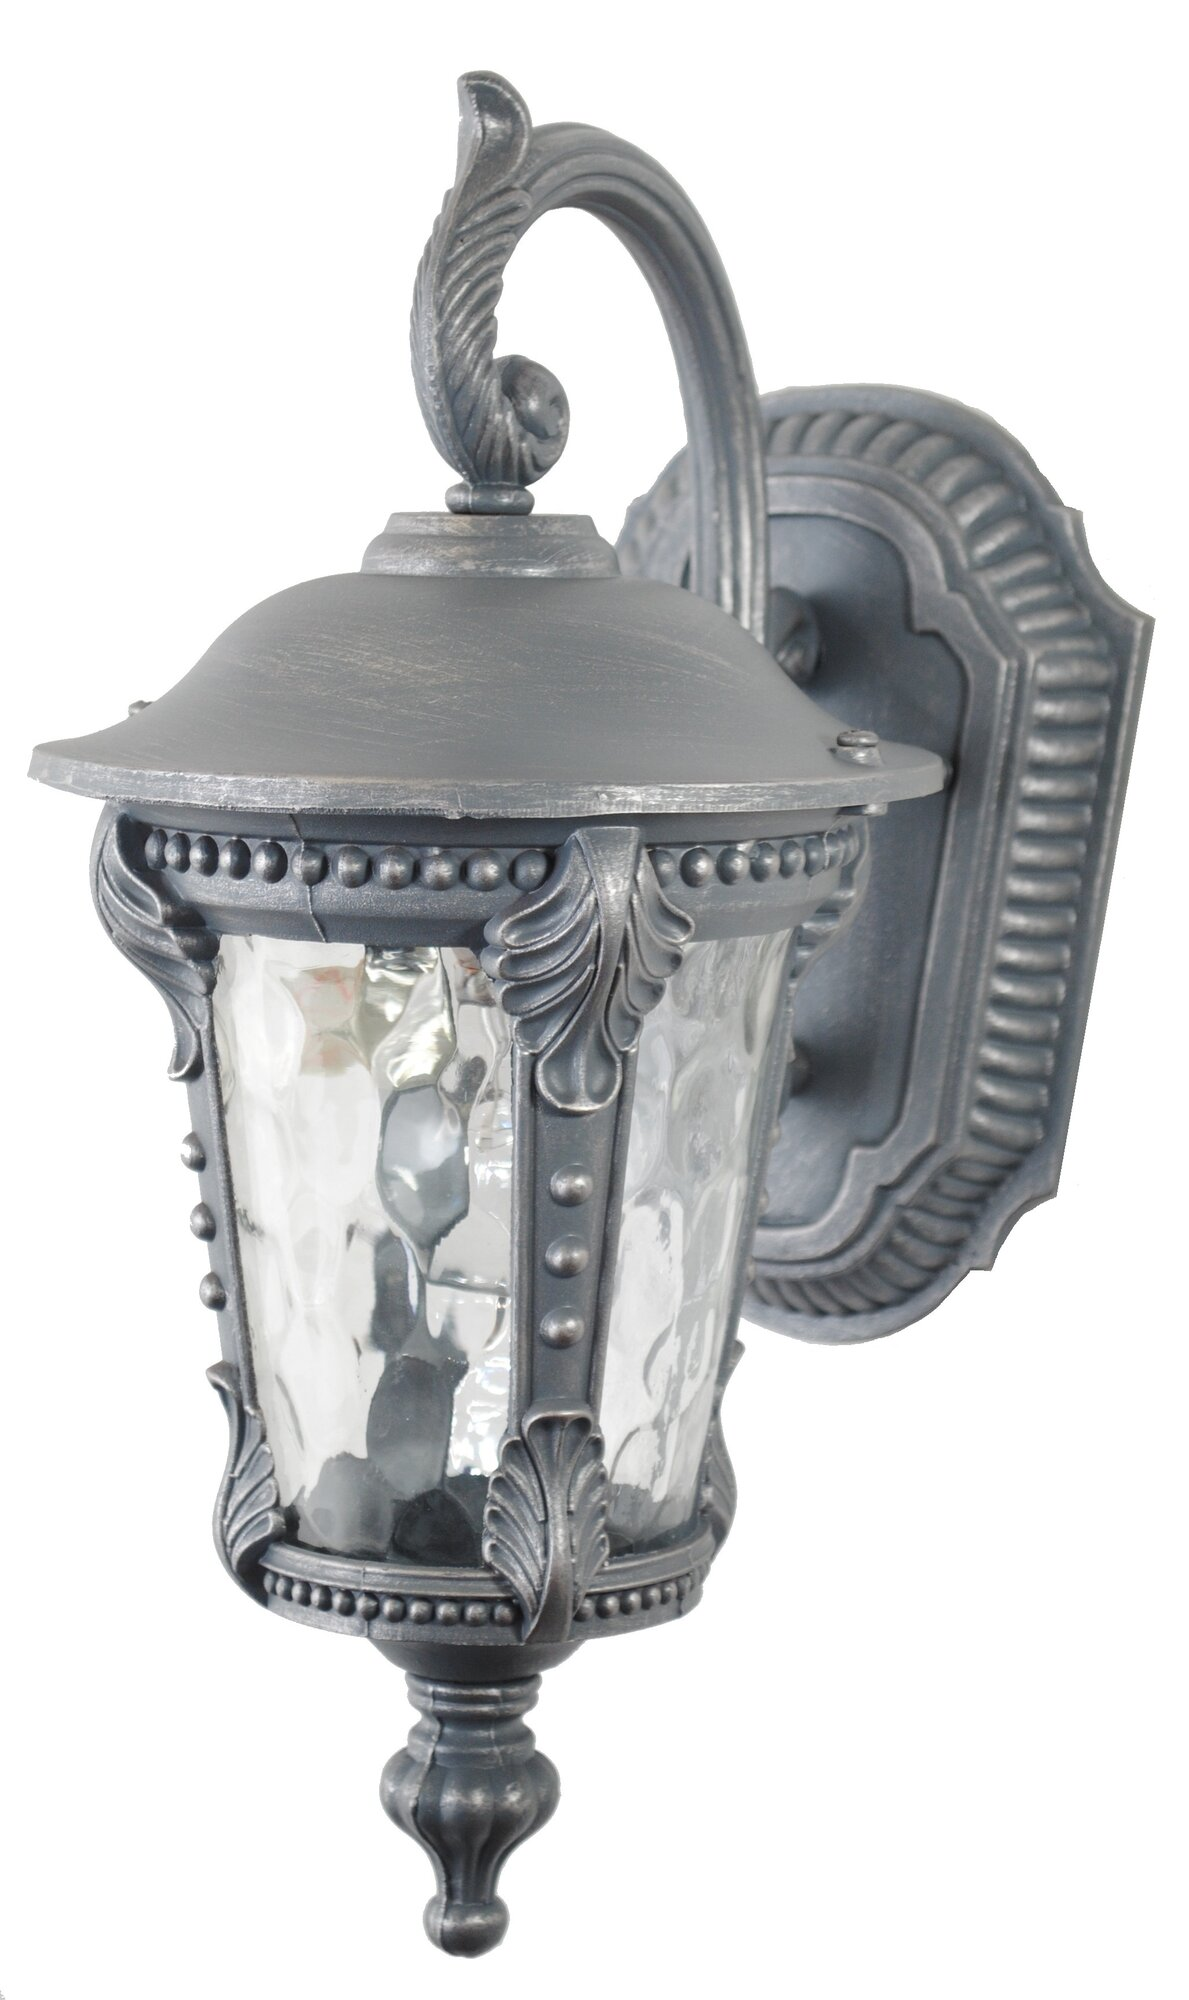 Melissa Lighting Kiss Series 1 Light Outdoor Wall Lantern EBay